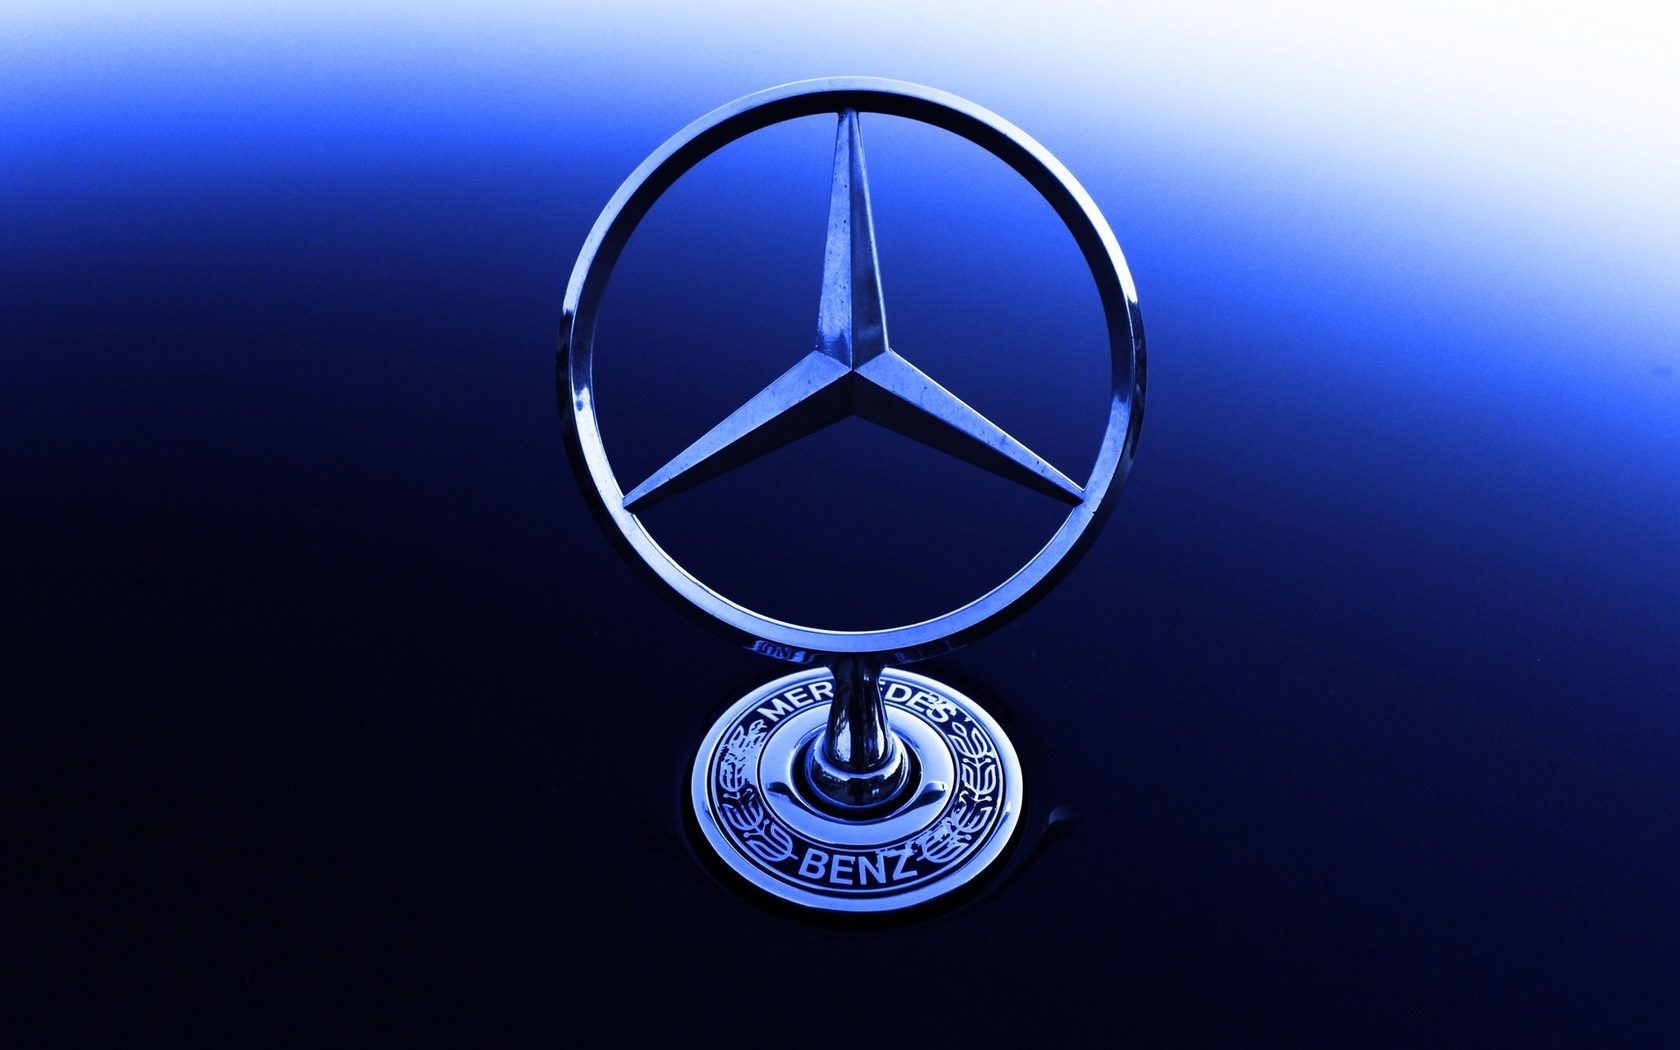 Mercedes Logo Wallpaper - WallpaperSafari